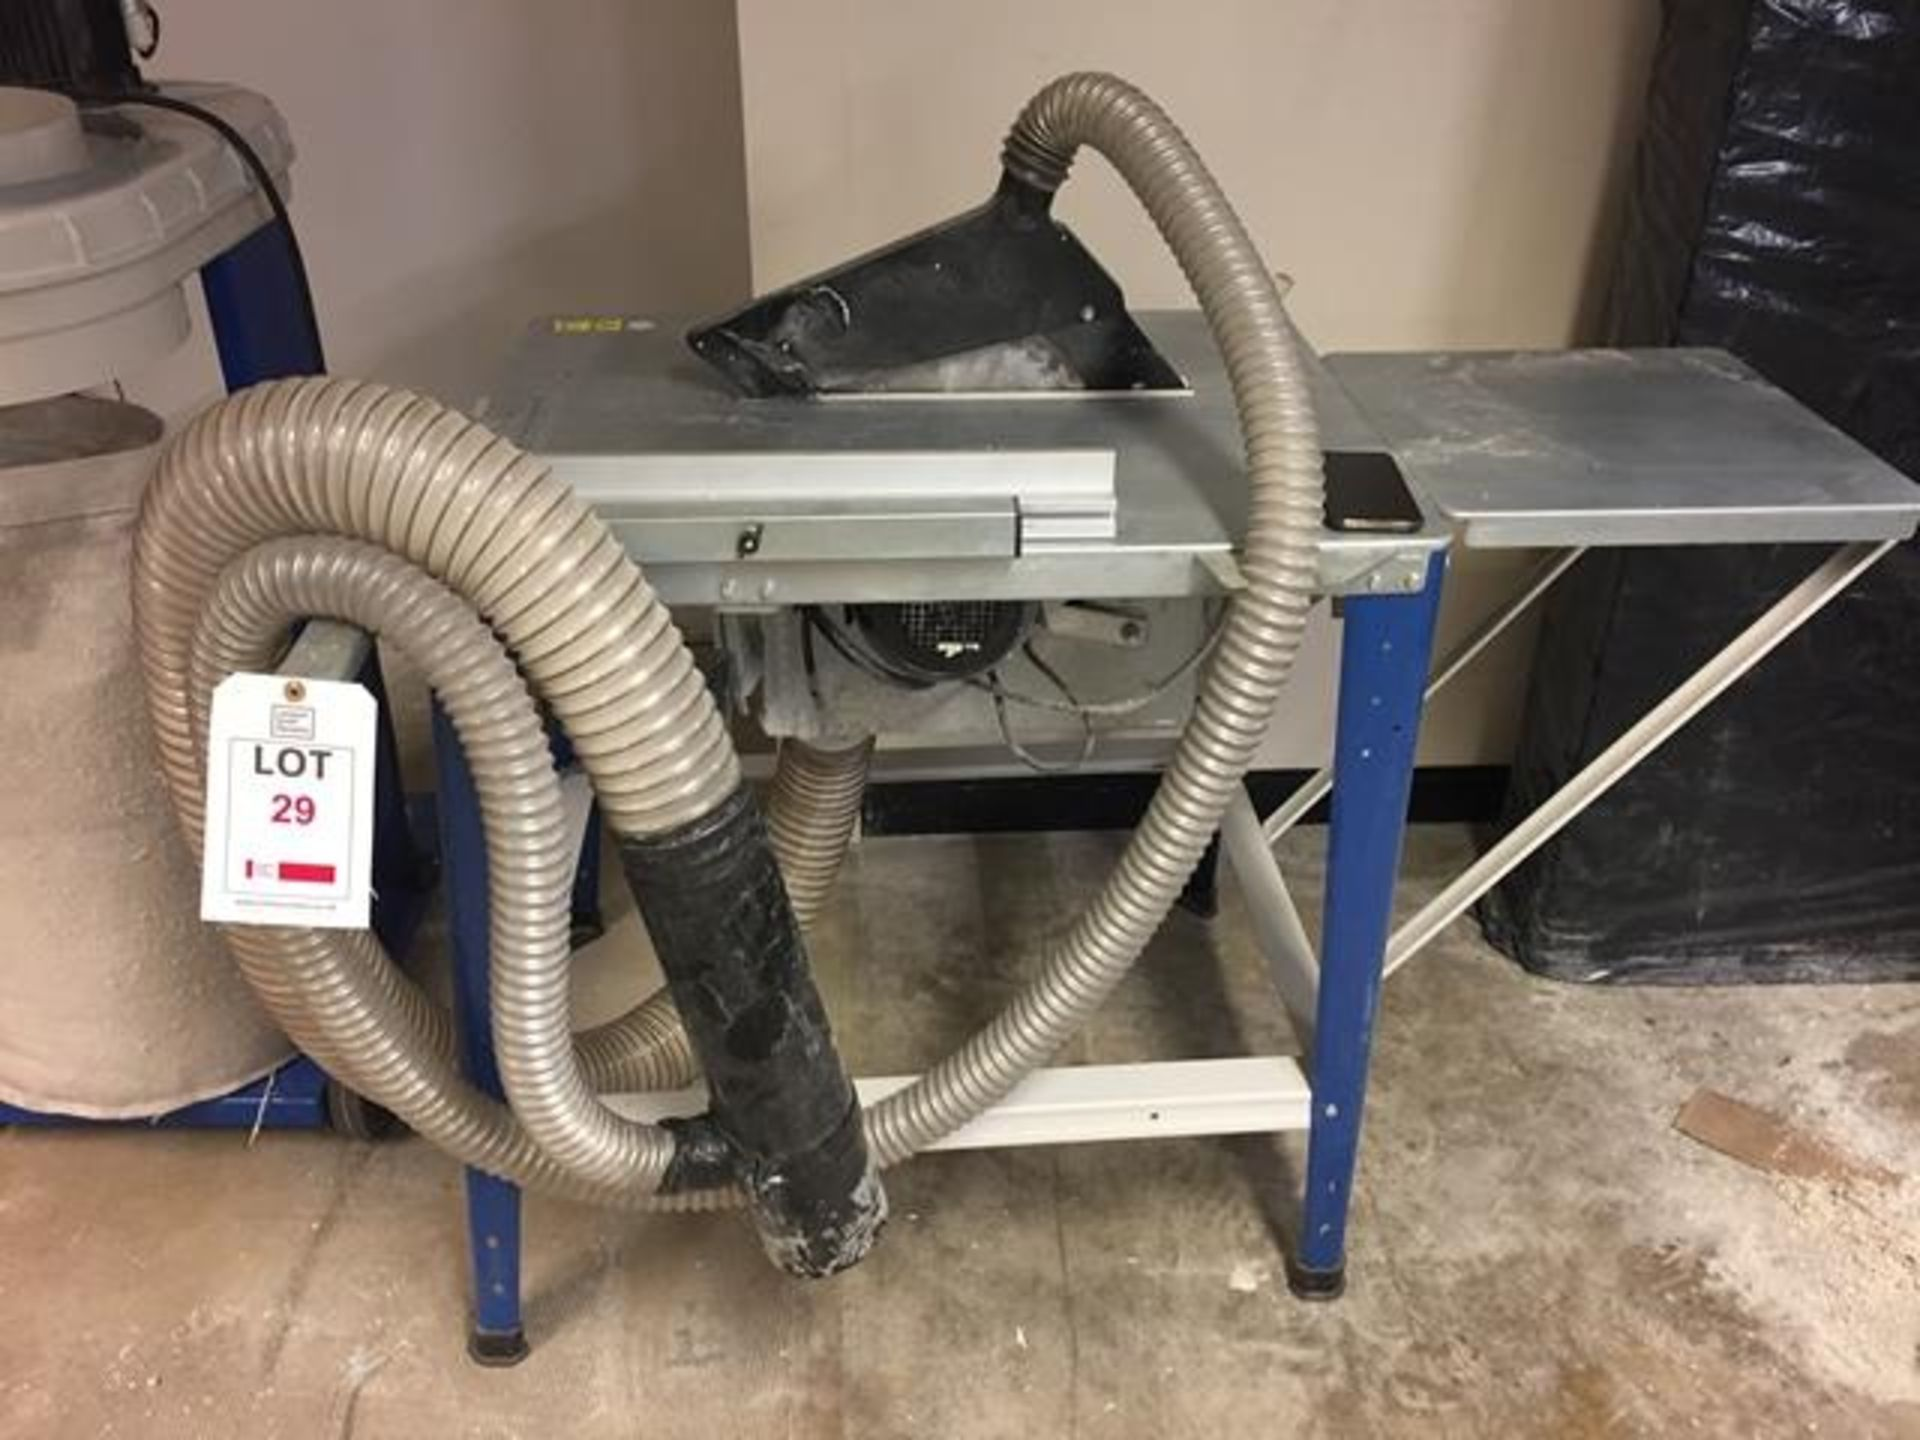 Los 29 - Scheppach Tisa 3.0 Table saw model 1901305904 s/n 0123-01014 DOM 10/2014 240v